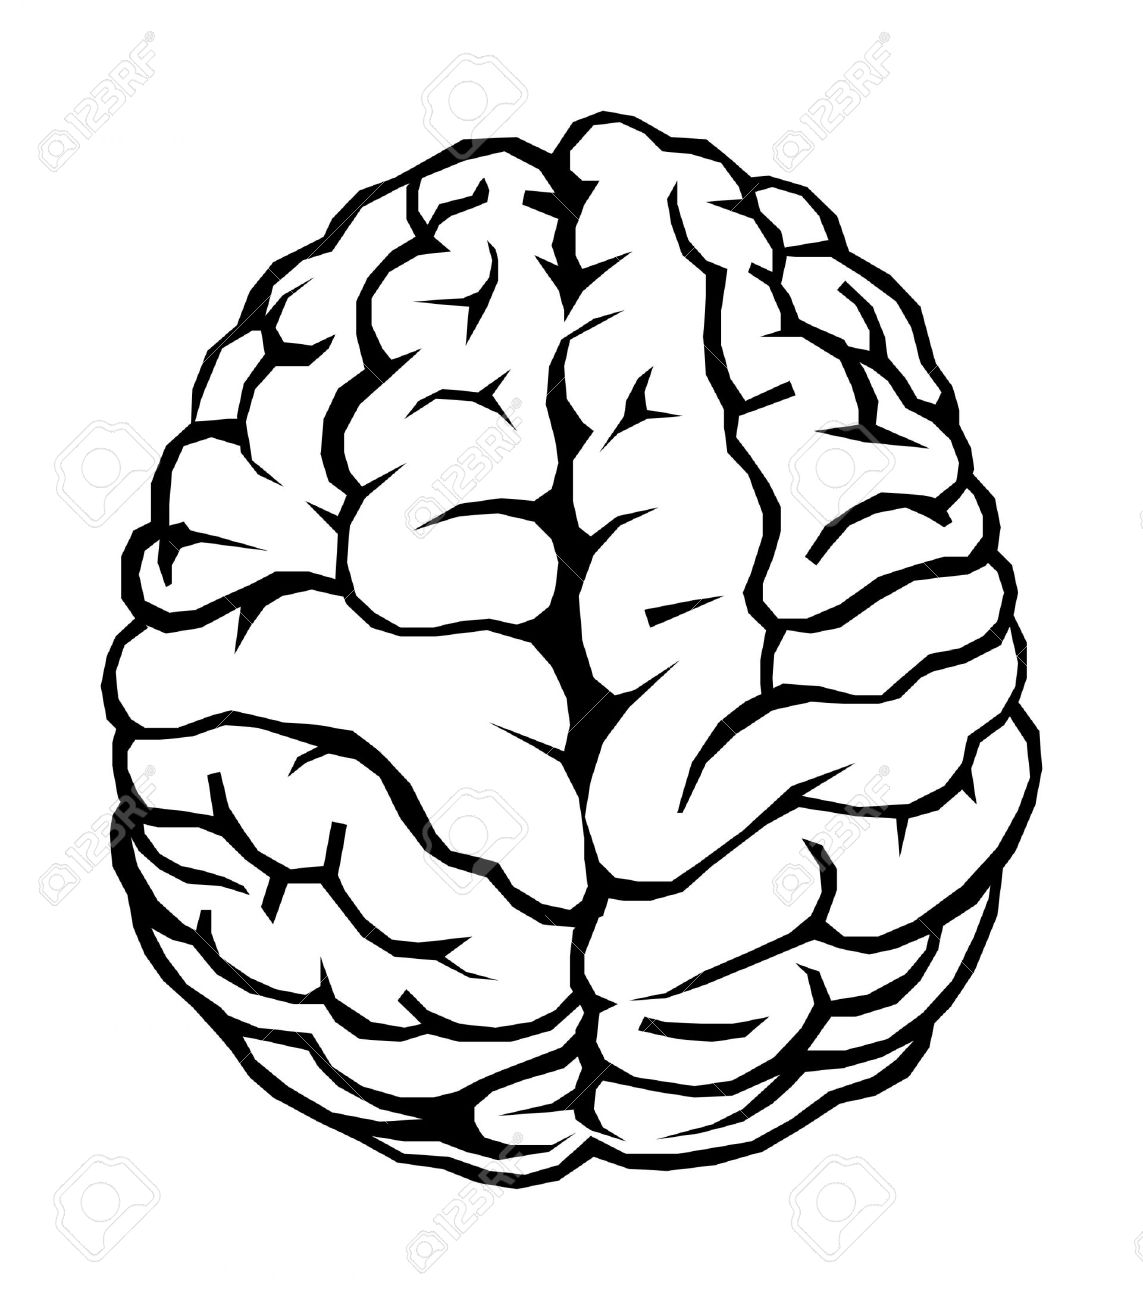 Best Brain Clipart #6073 - Clipartion.com